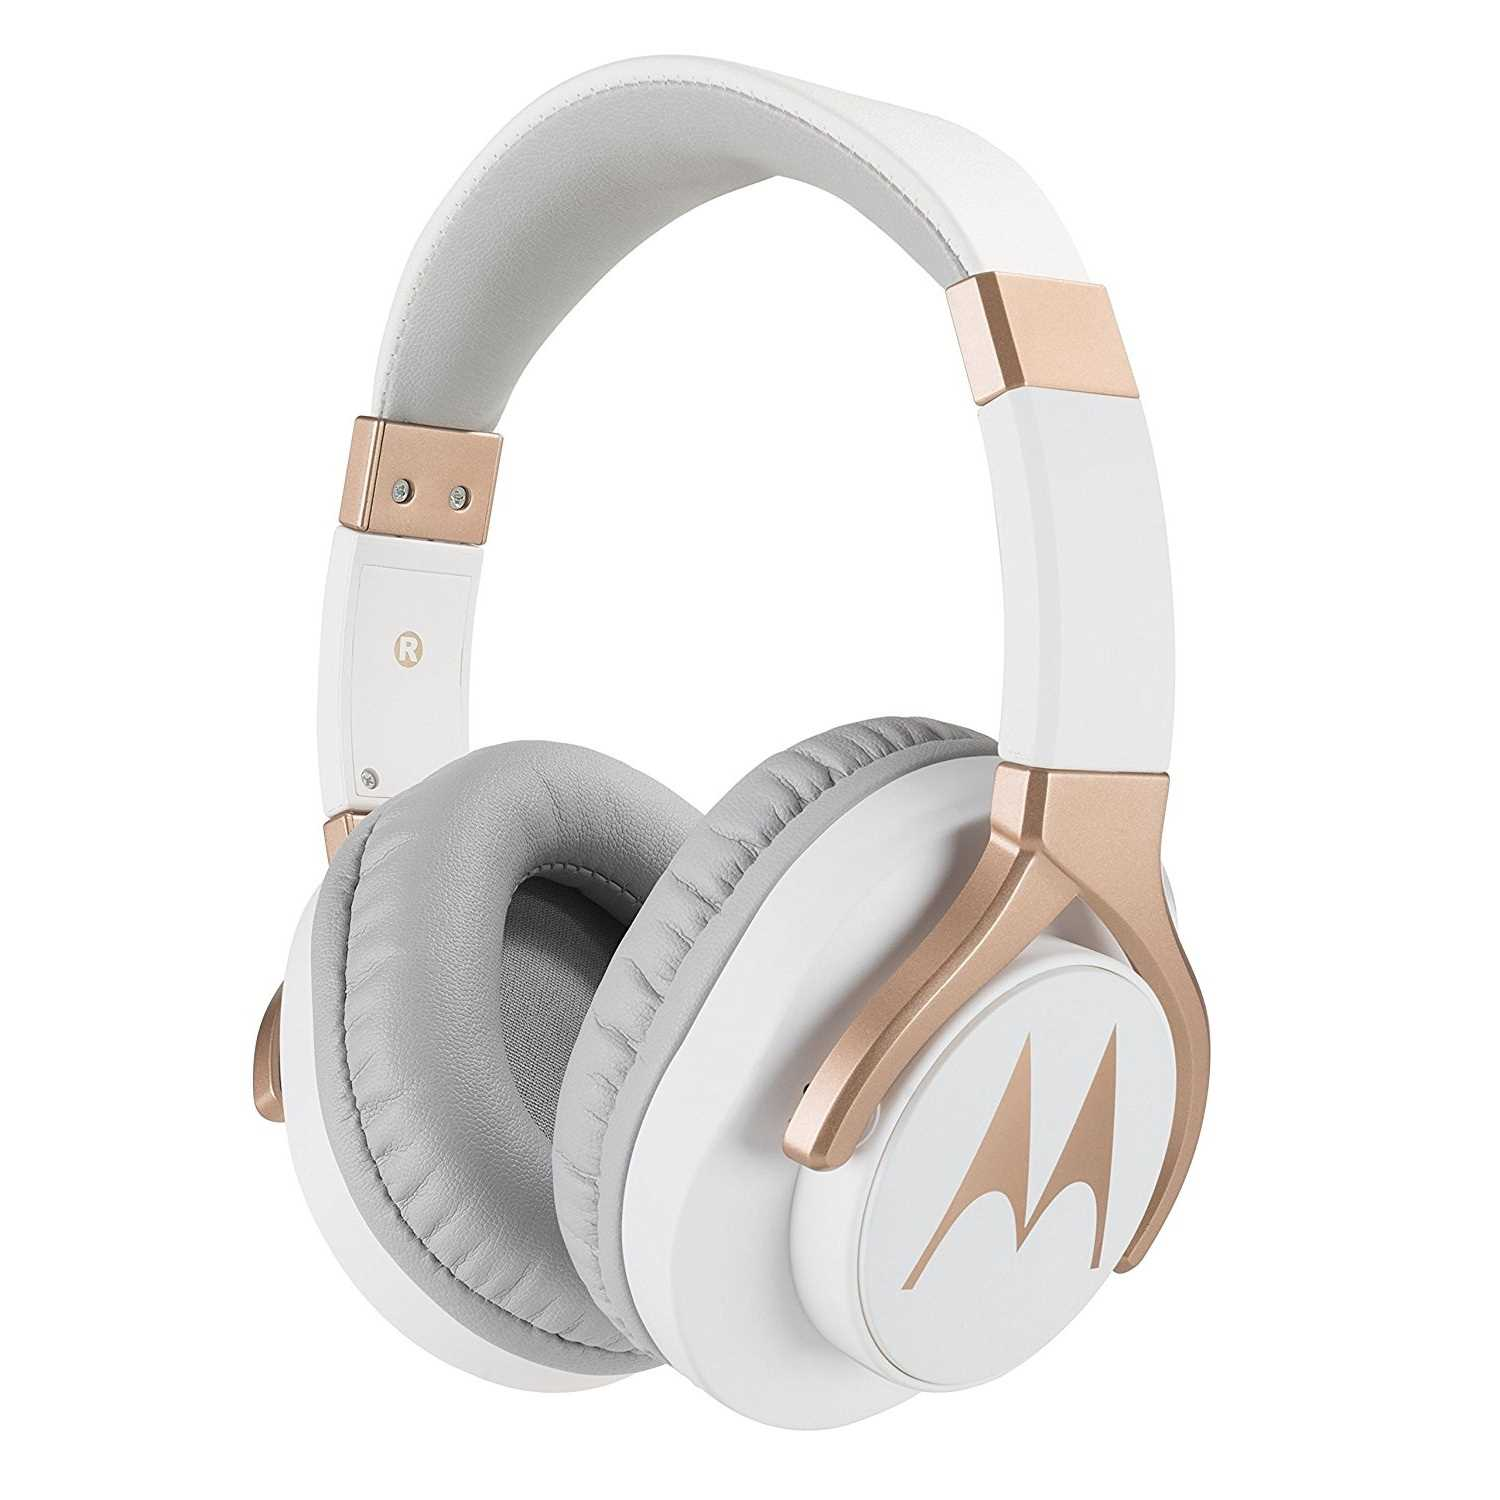 2d7616fecde Motorola Pulse 3 Max Wired Headphone Price  19 Apr 2019